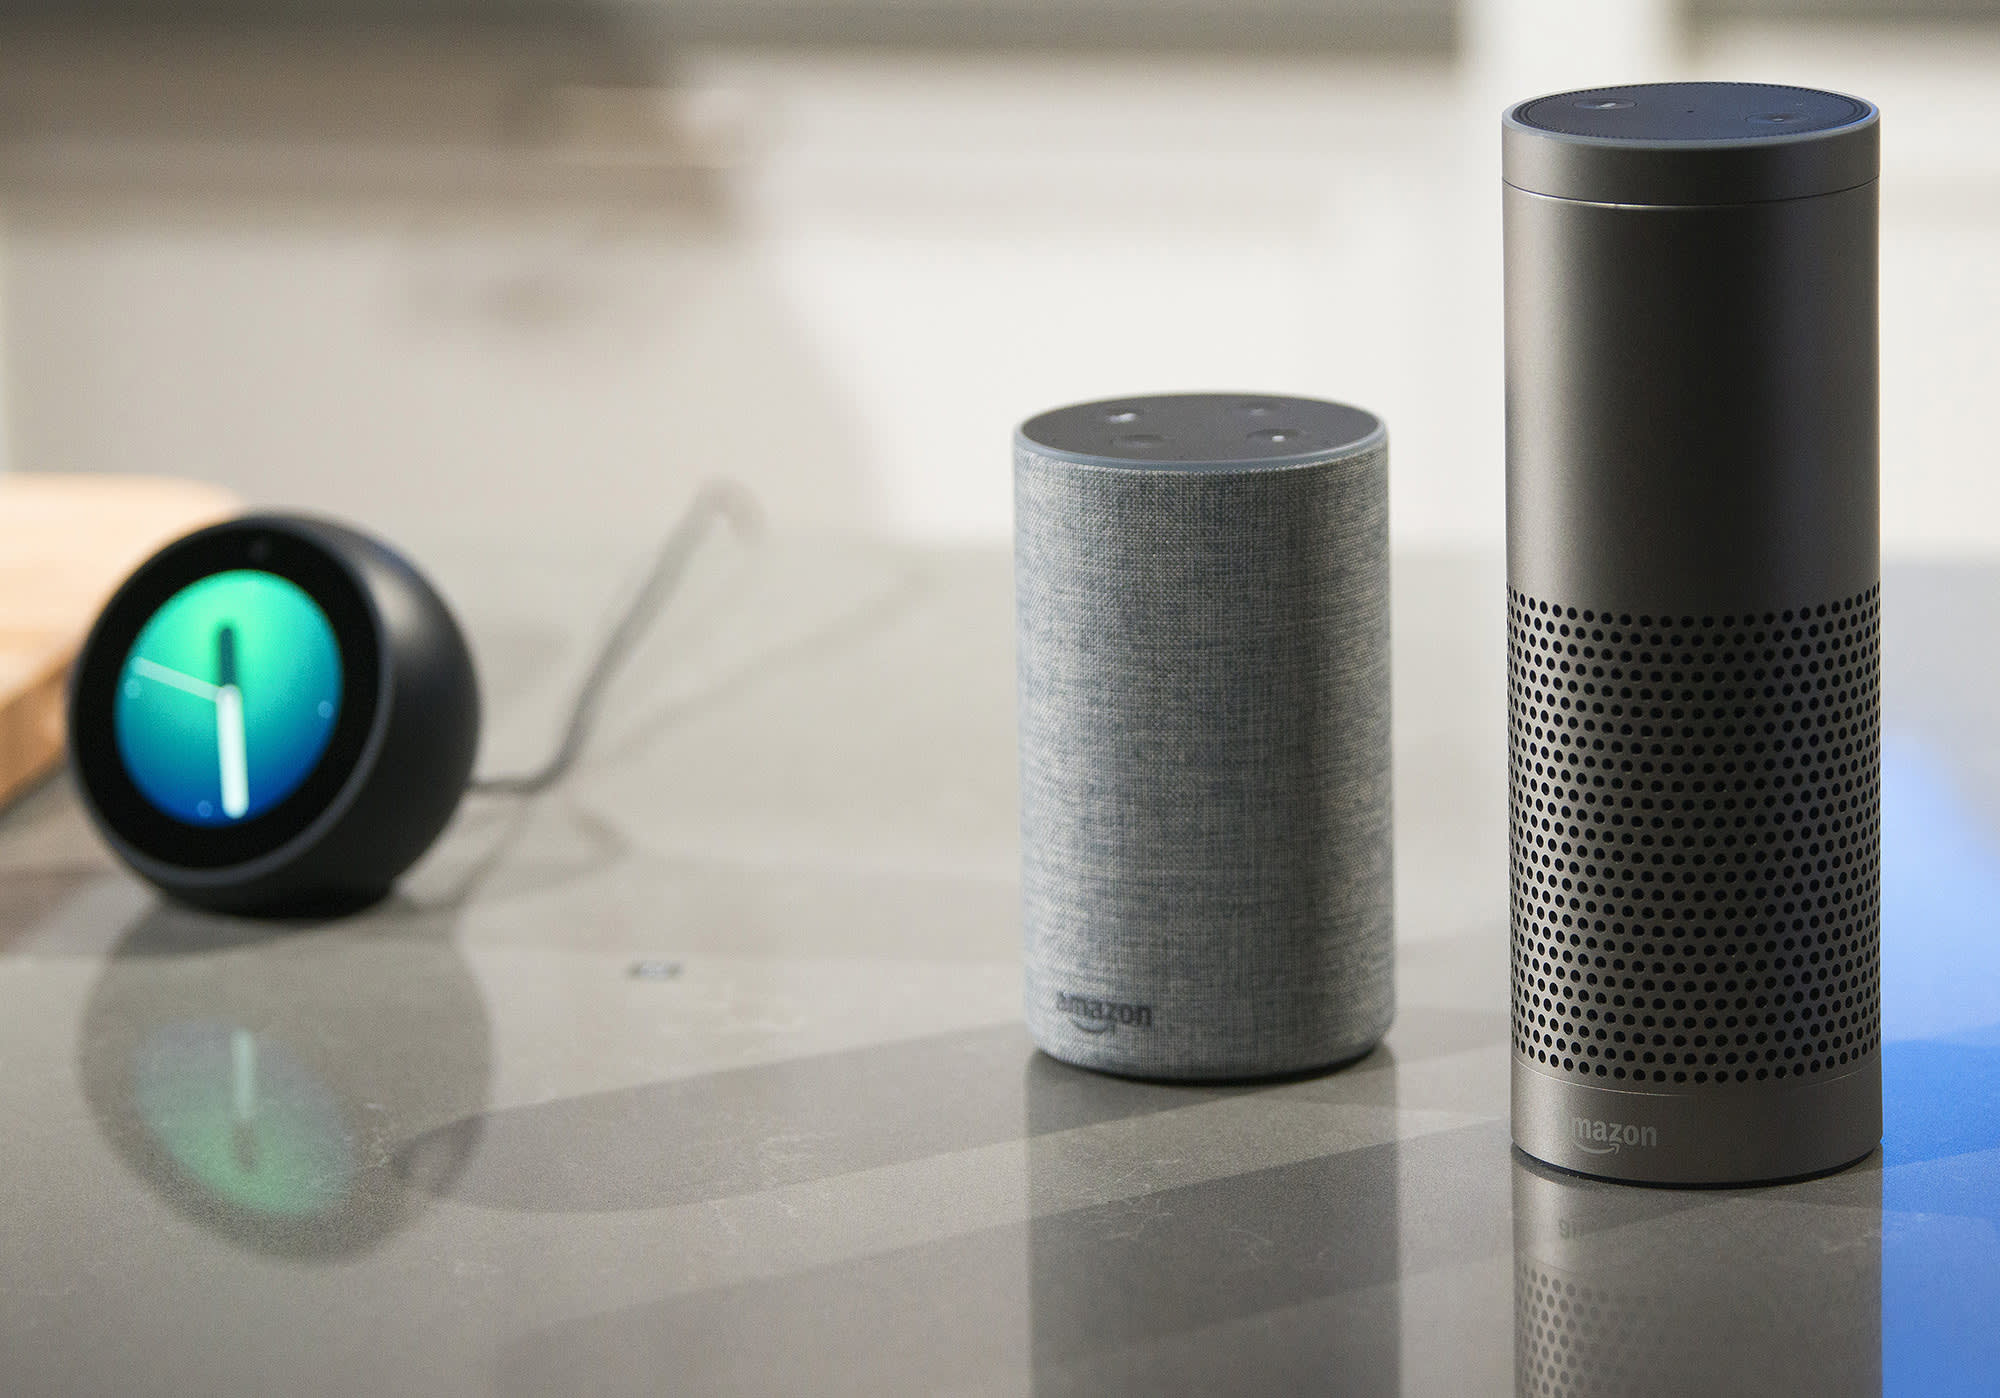 Amazon Echo is half off on Prime Day: Here's what you can do with it